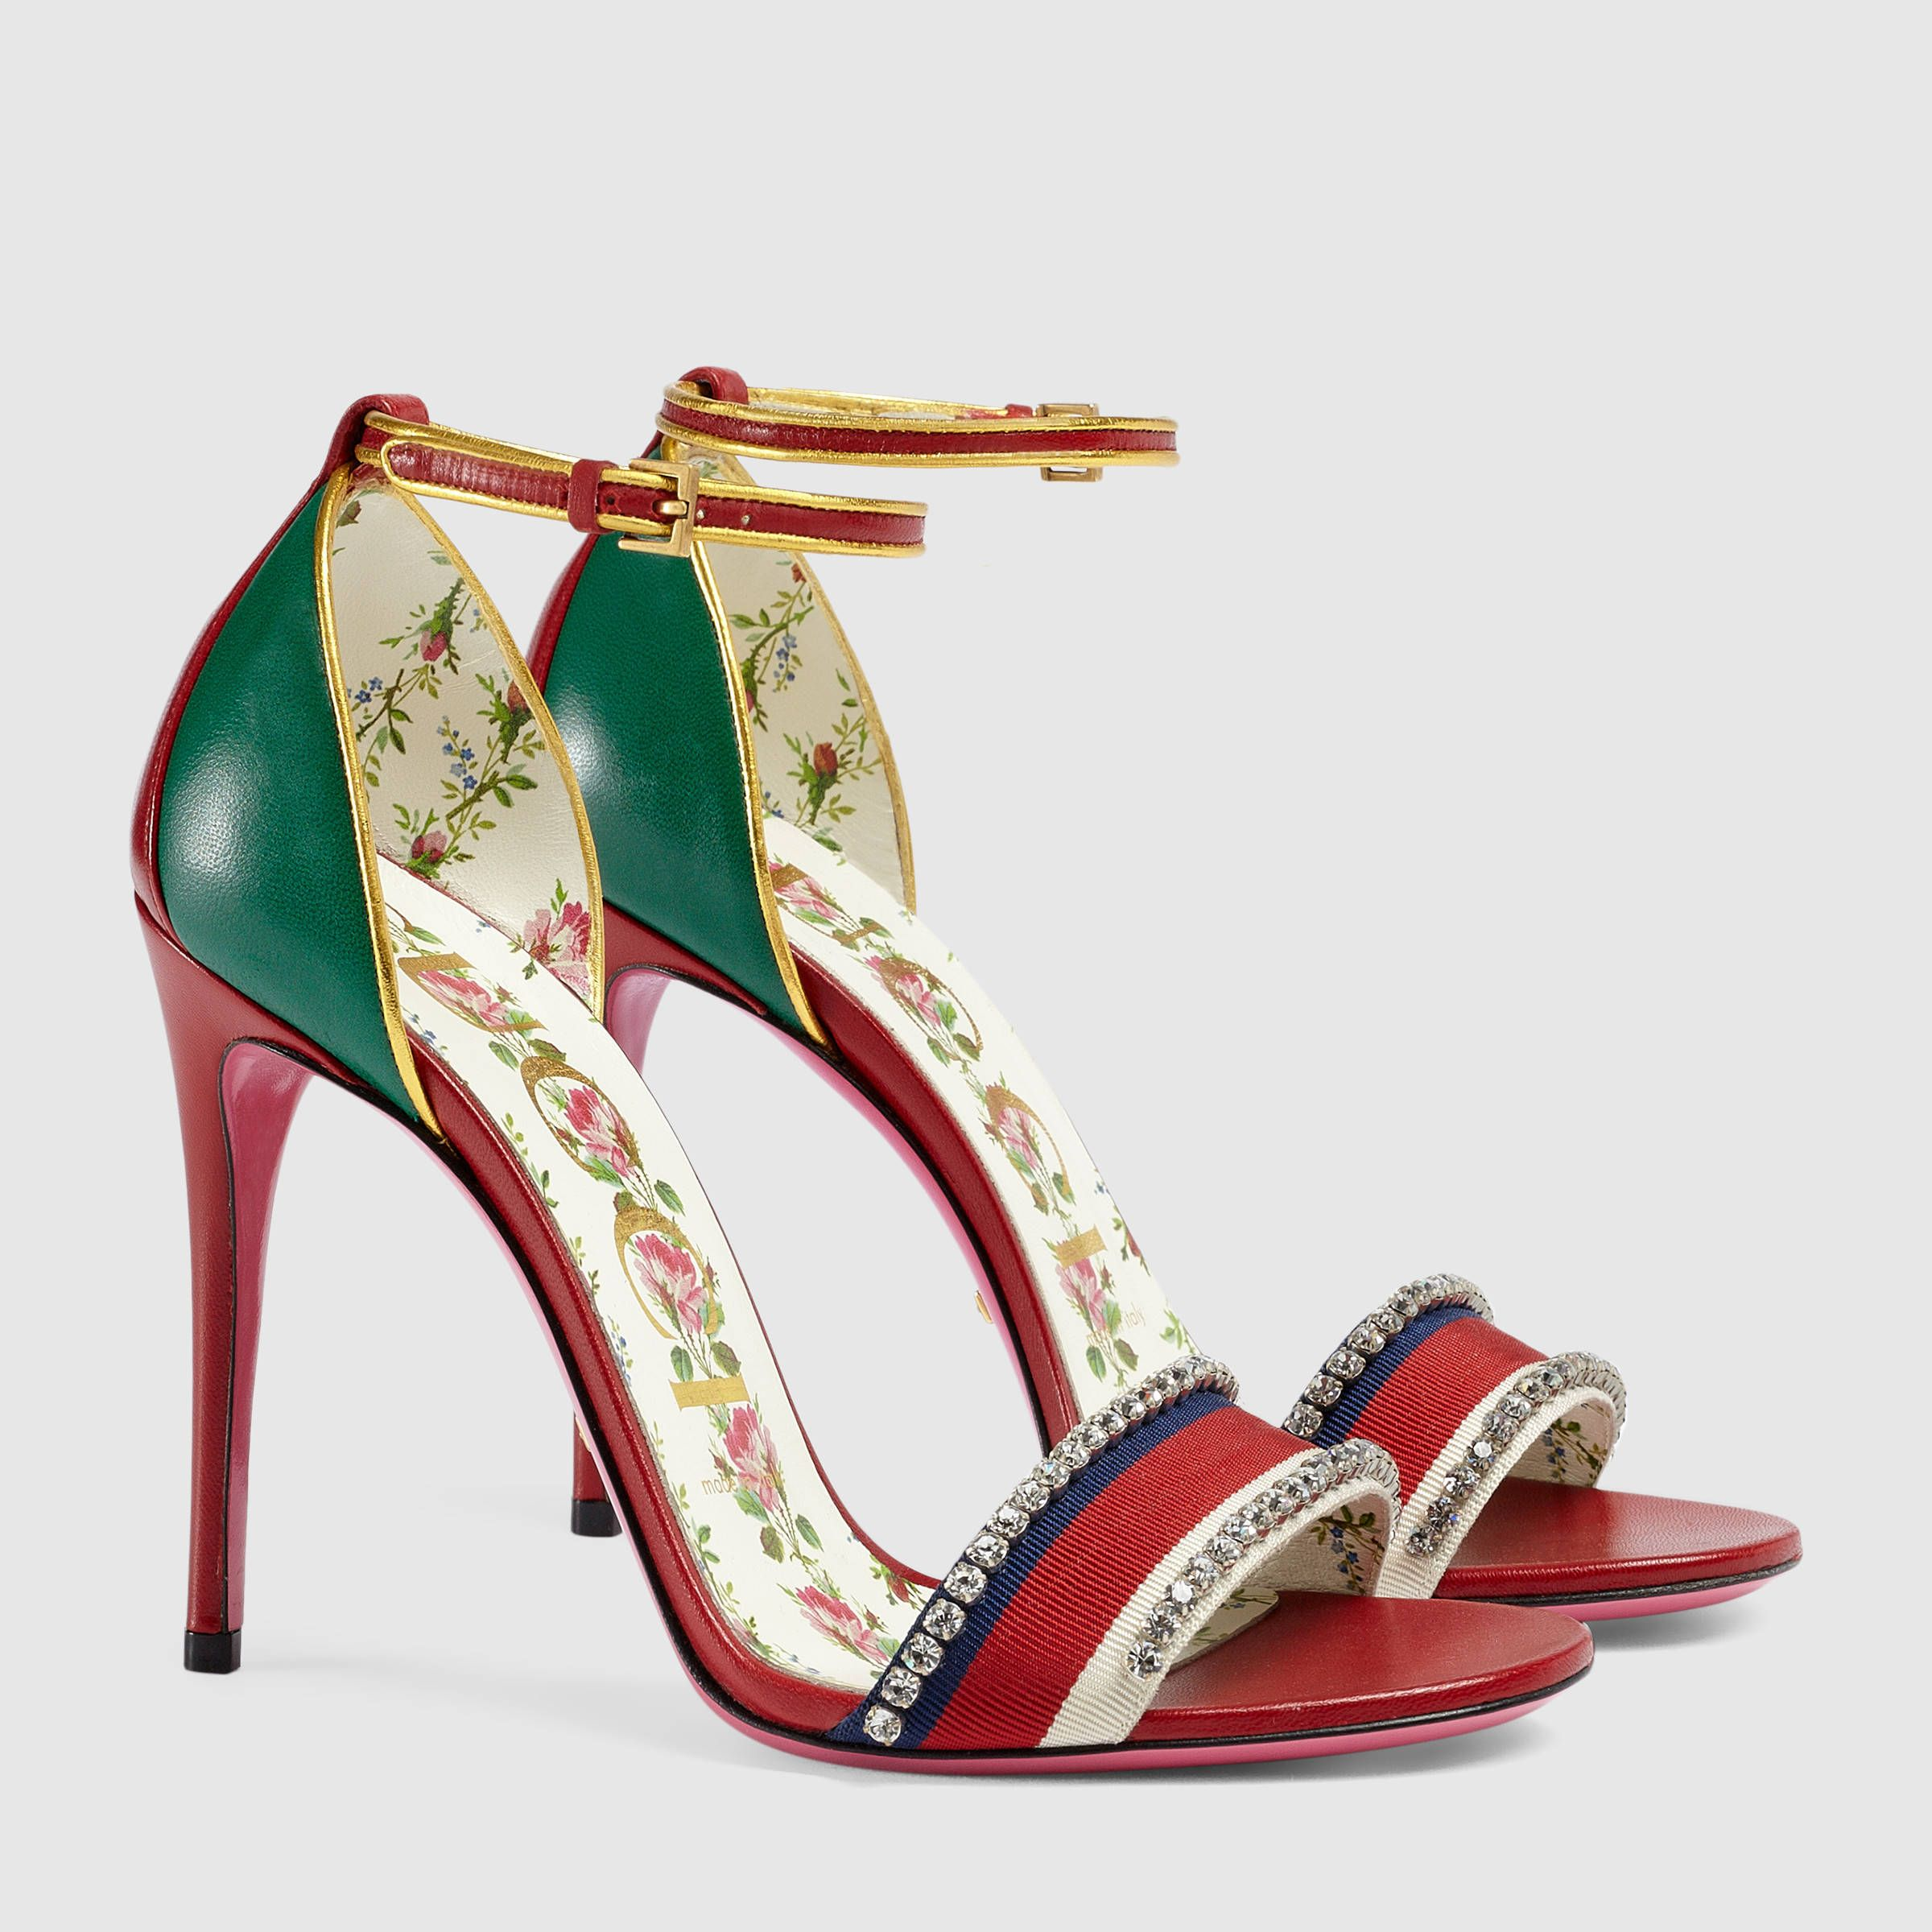 Gucci - Red/green leather sandals with